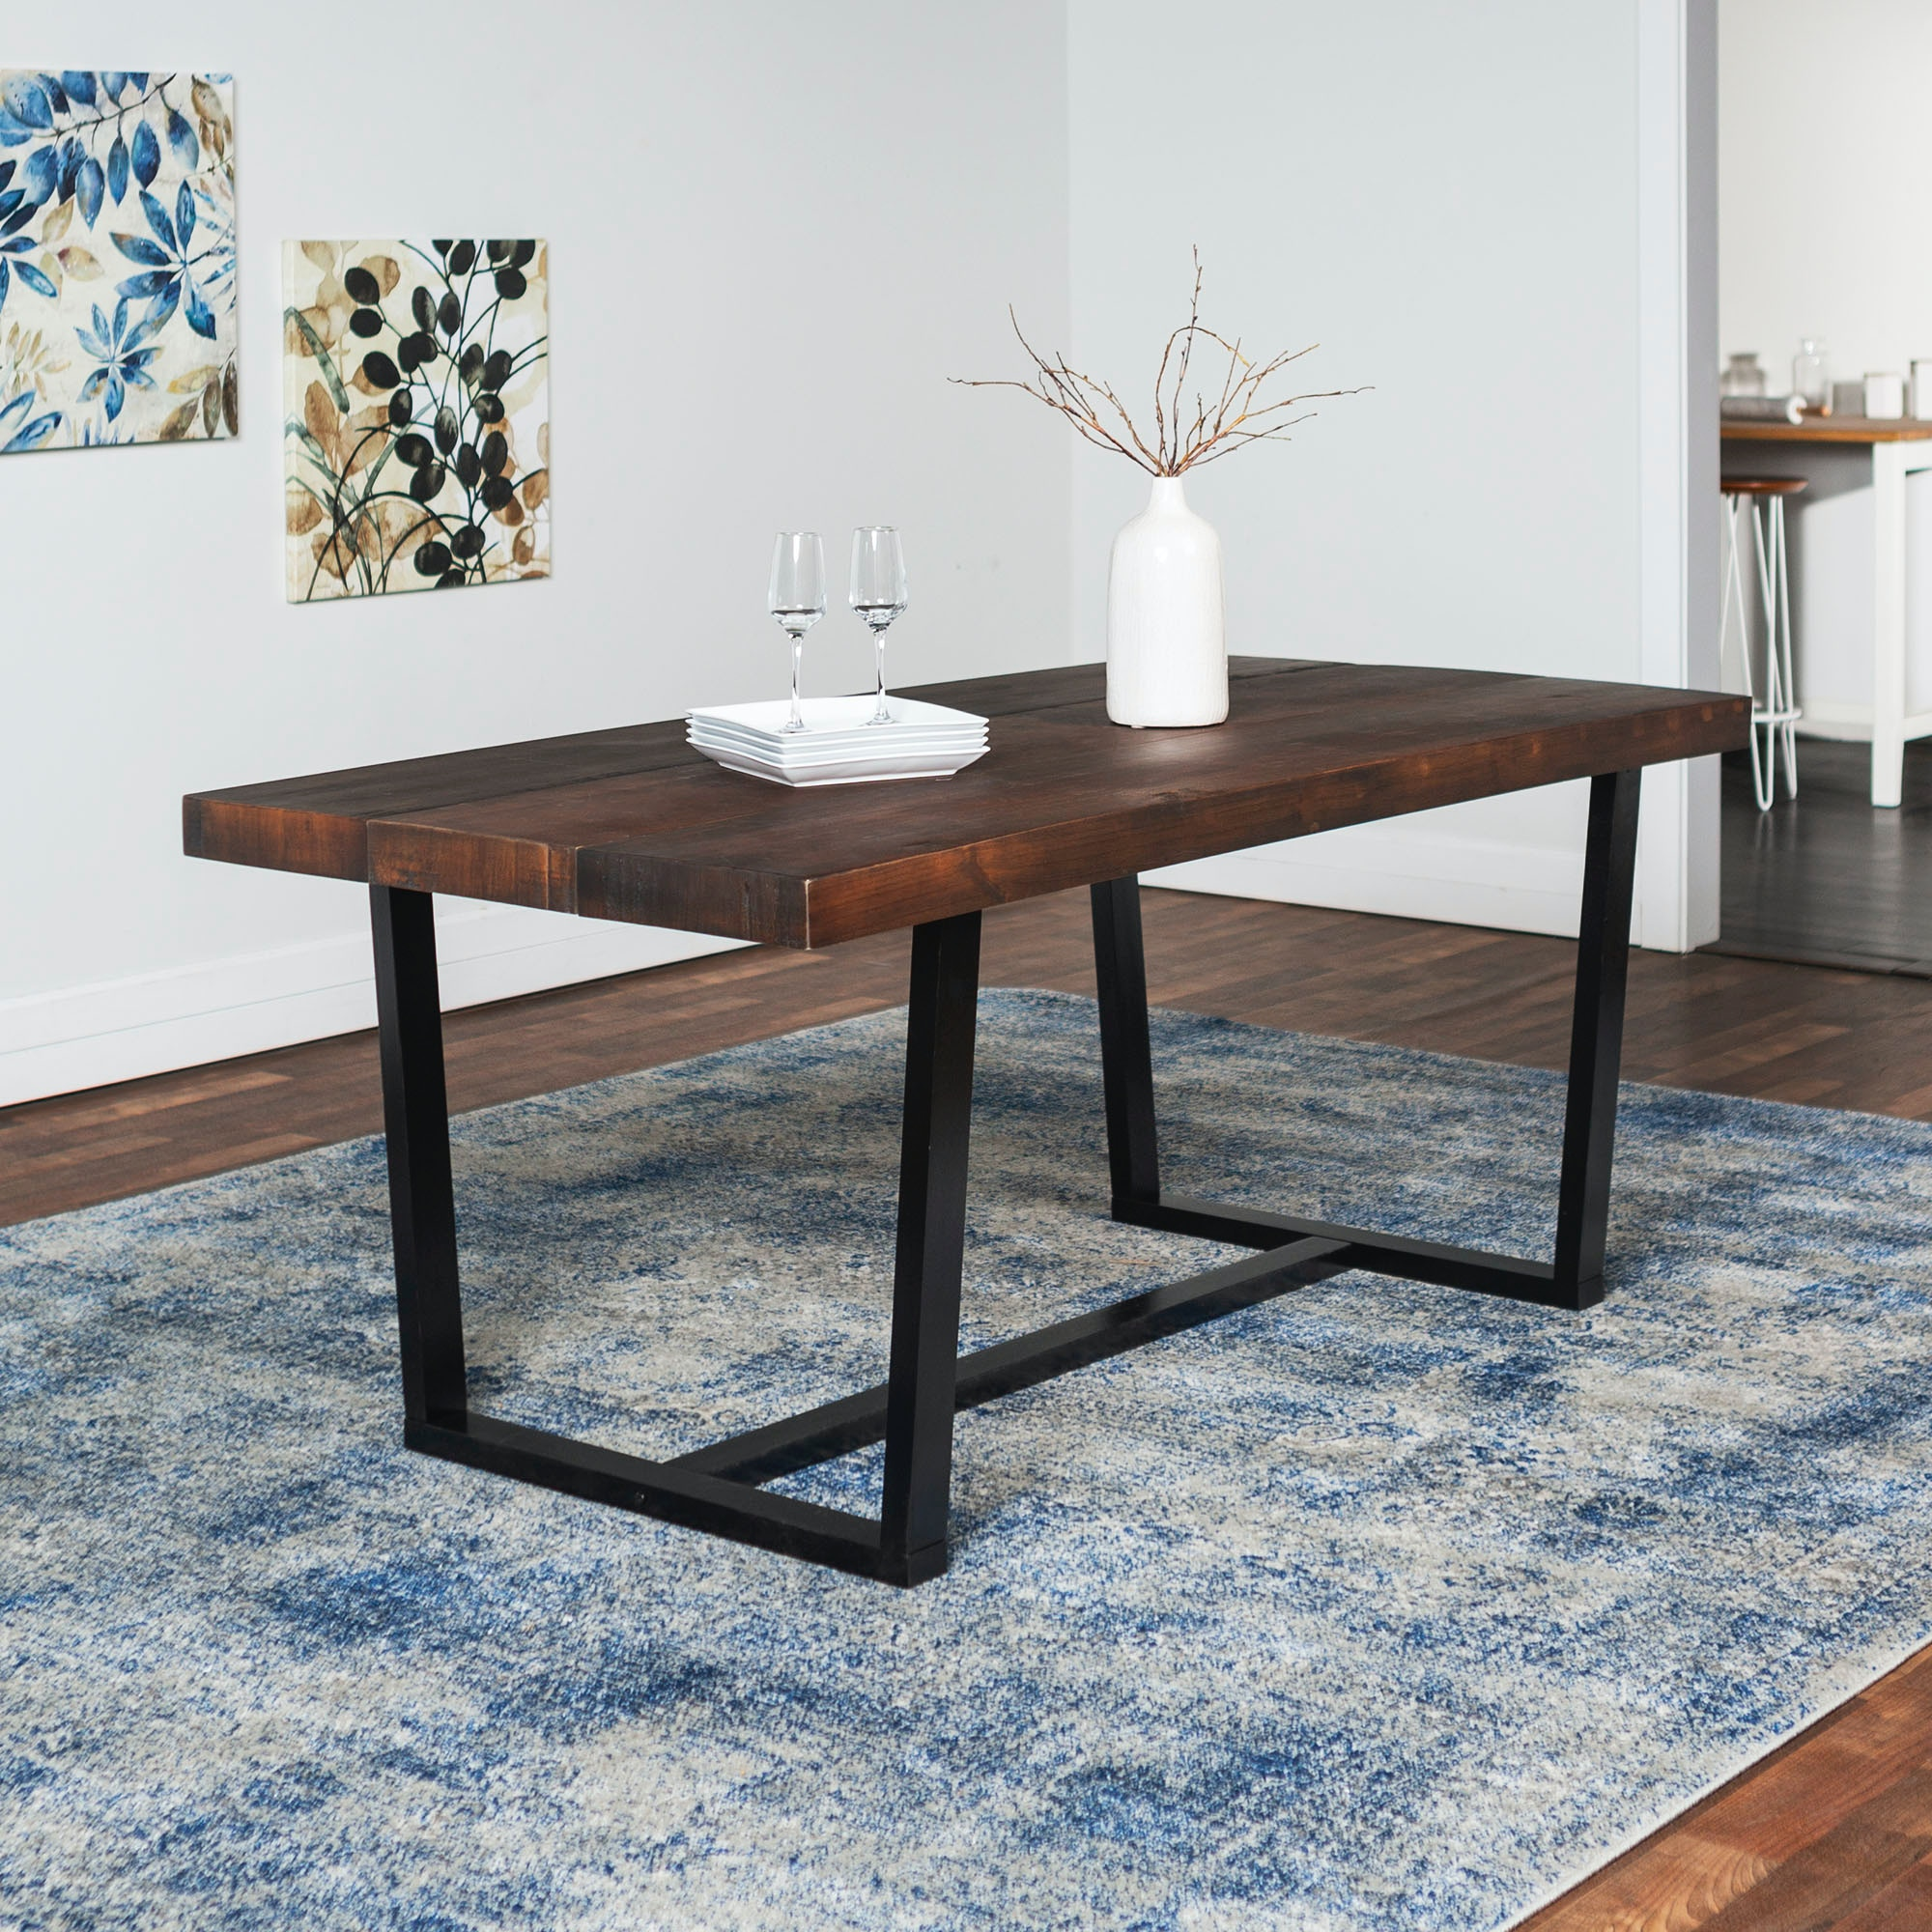 194 & Ft Myers Dining Room 72\u0027\u0027 Rustic Urban Industrial Farmhouse Distressed Solid Wood Dining Table WEDTW72DSWMA Walter E. Smithe Furniture + Design